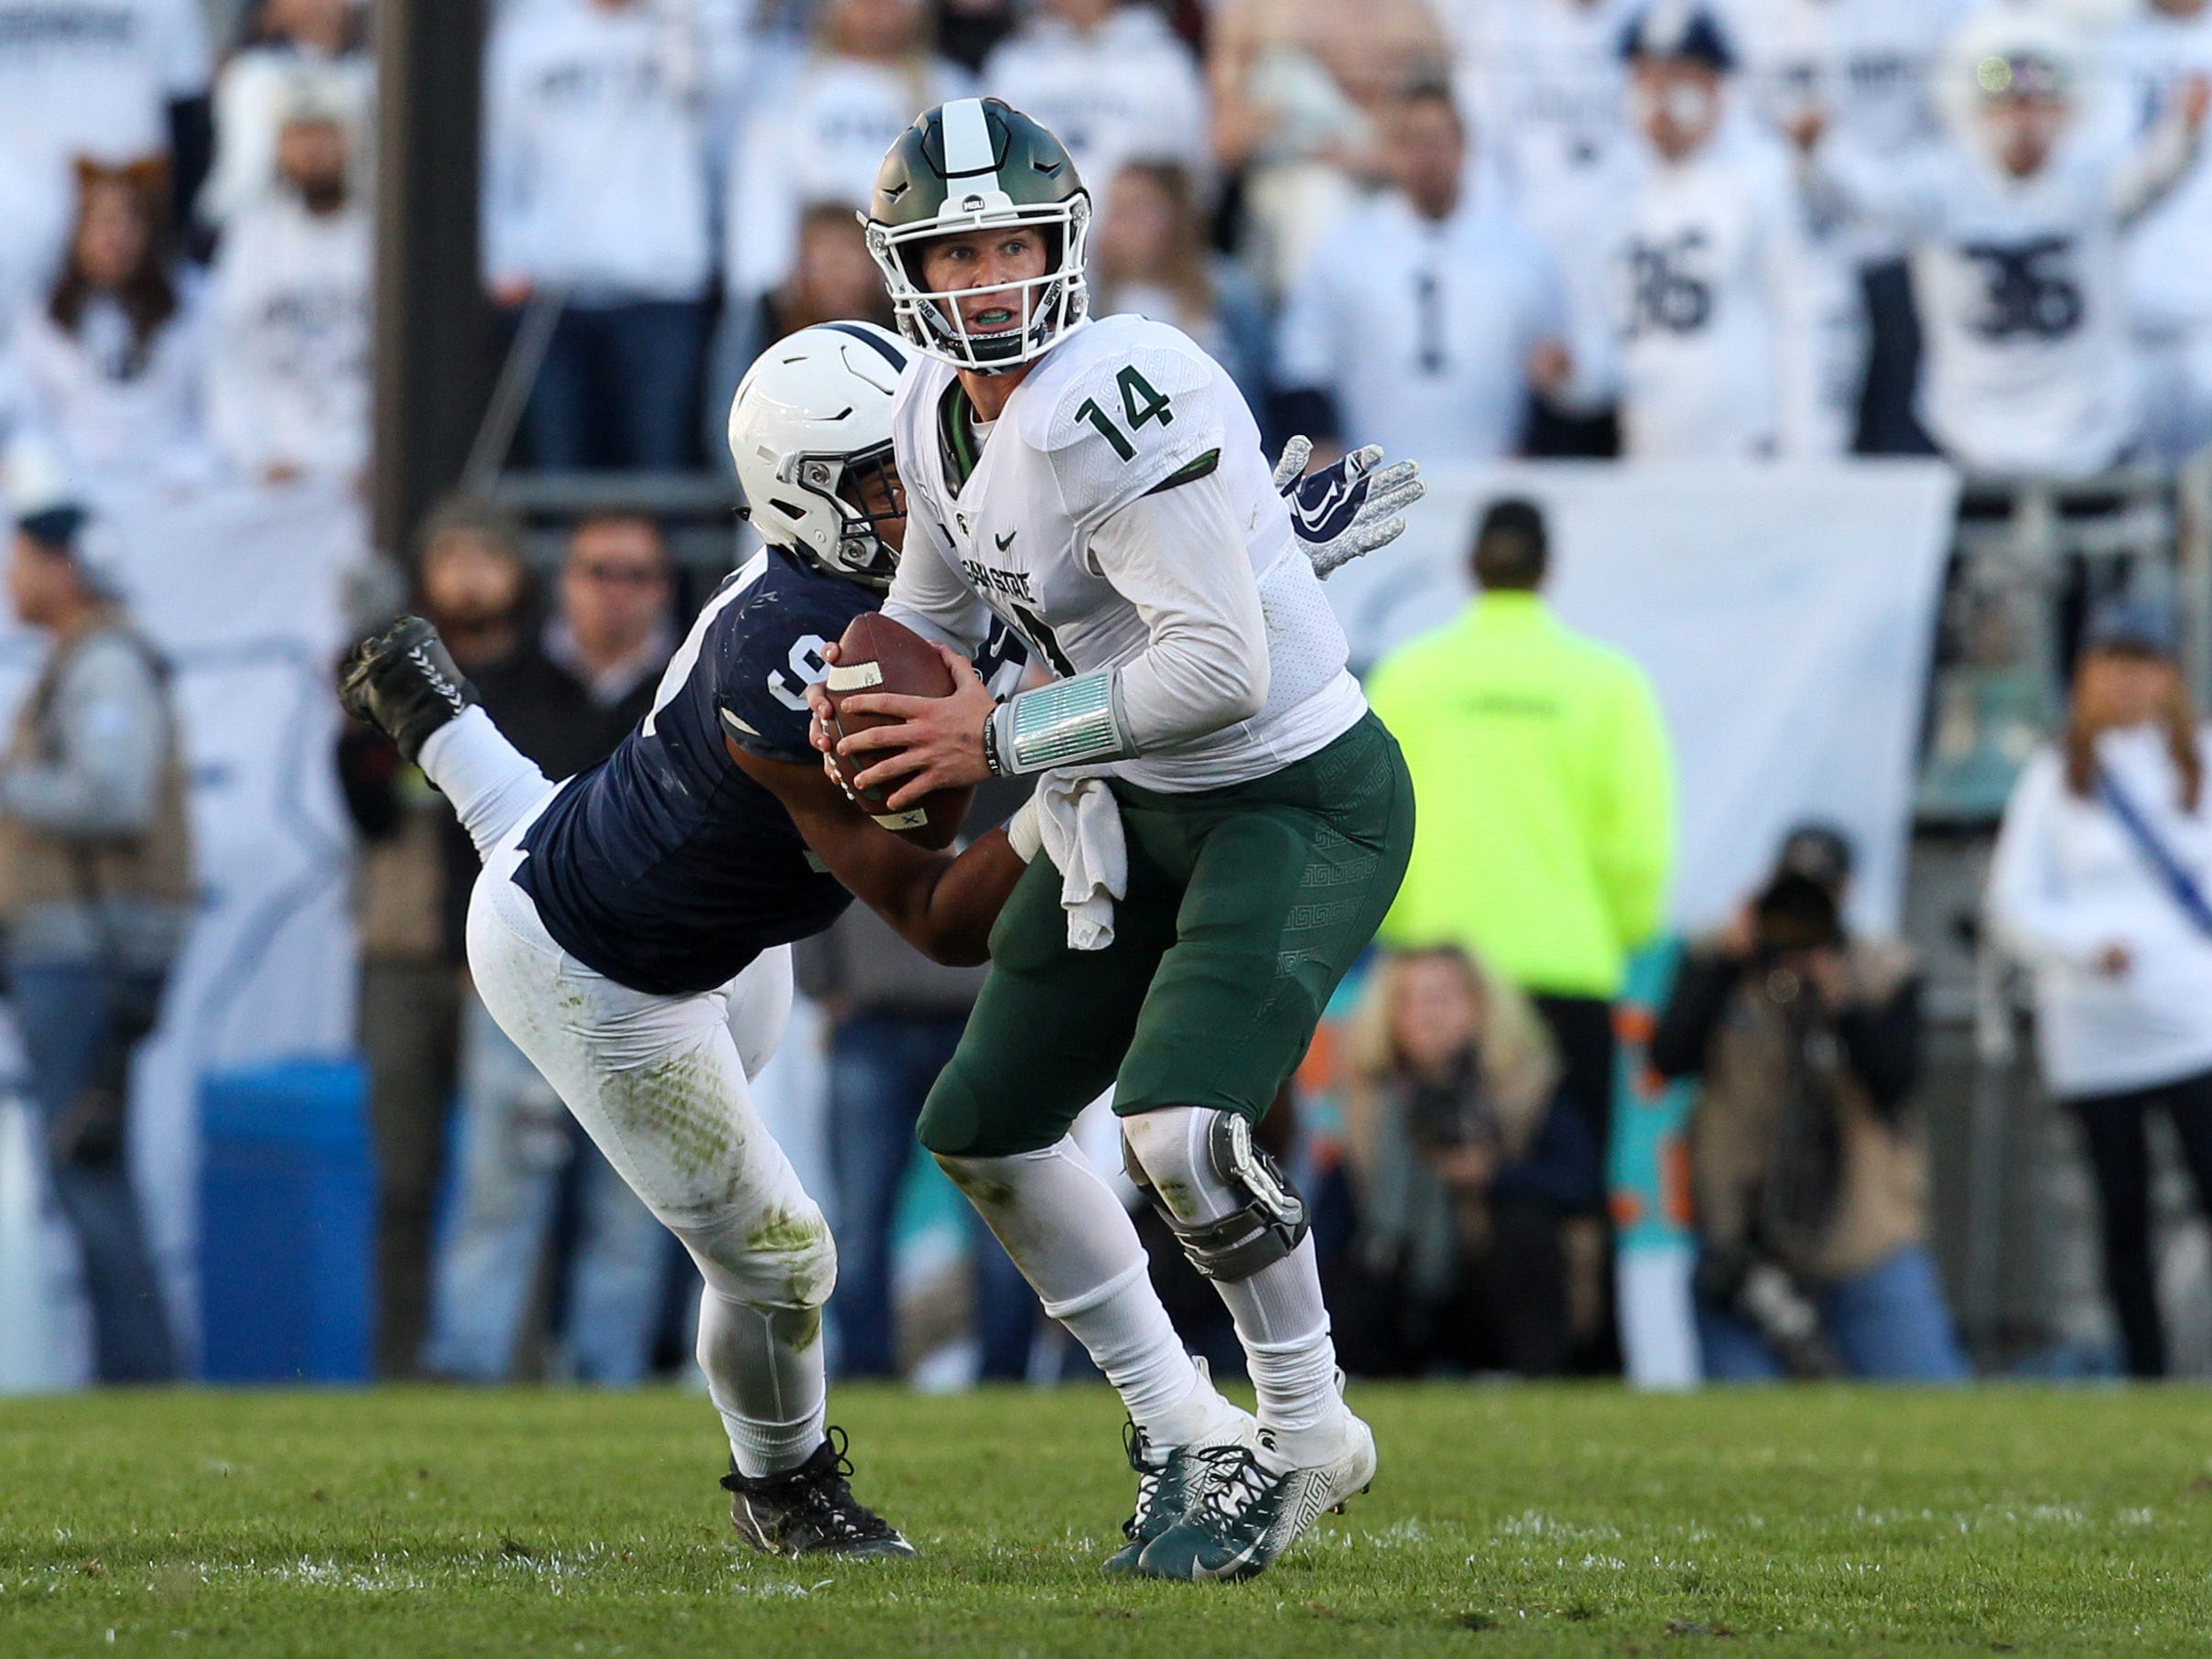 Penn State Nittany Lions defensive end Yetur Gross-Matos (99) sacks Michigan State Spartans Michigan State Spartans quarterback Brian Lewerke (14) during the second quarter at Beaver Stadium.